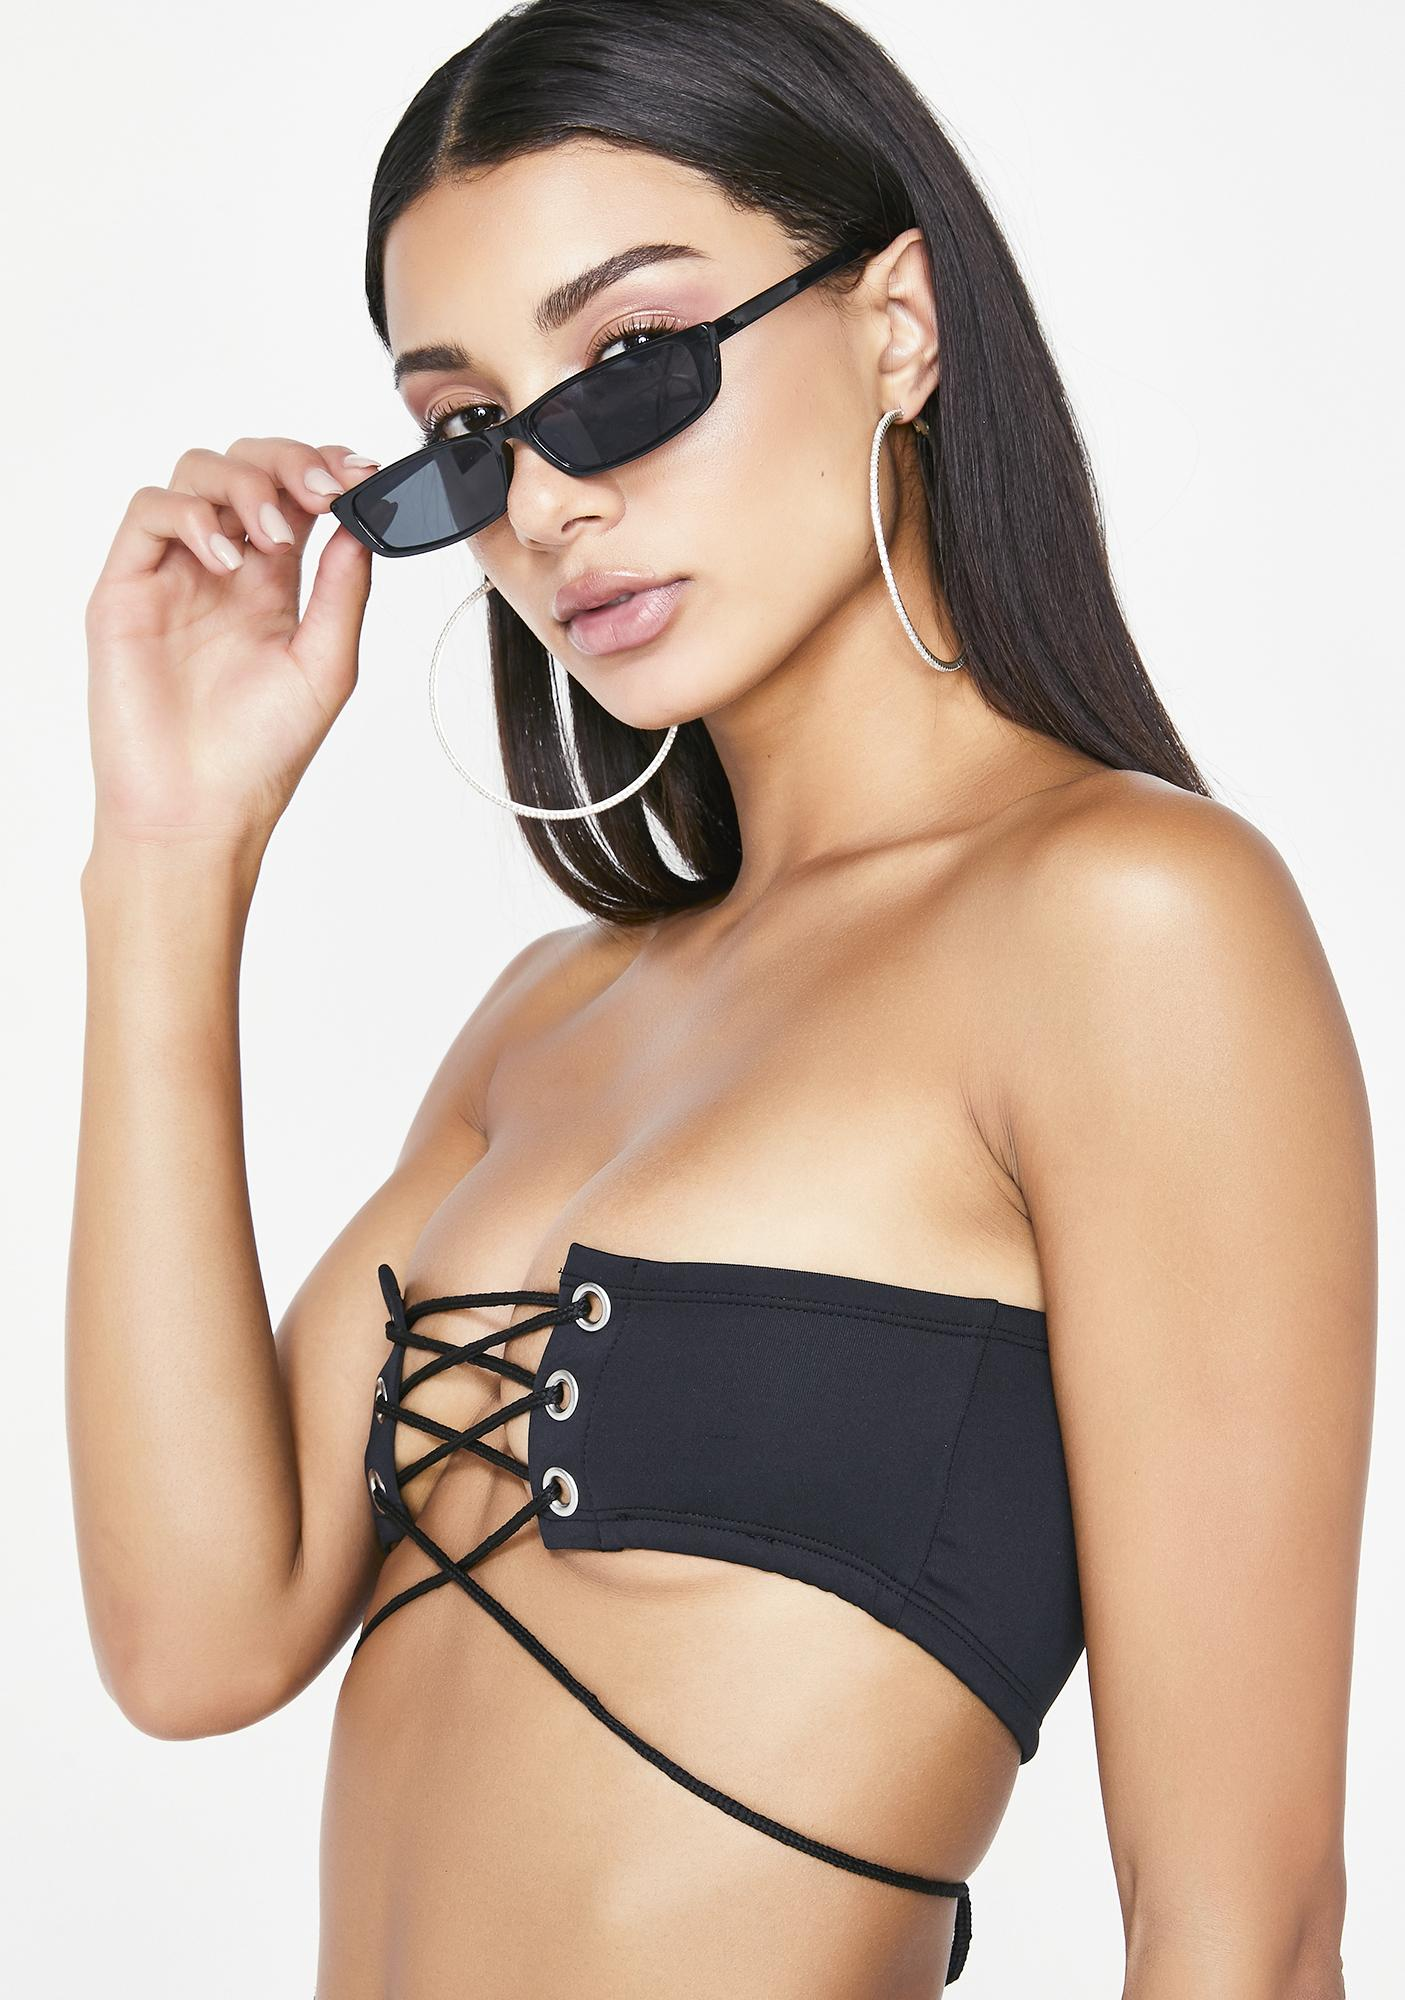 Wicked Ish Talker Lace Up Bandeau by Poster Grl